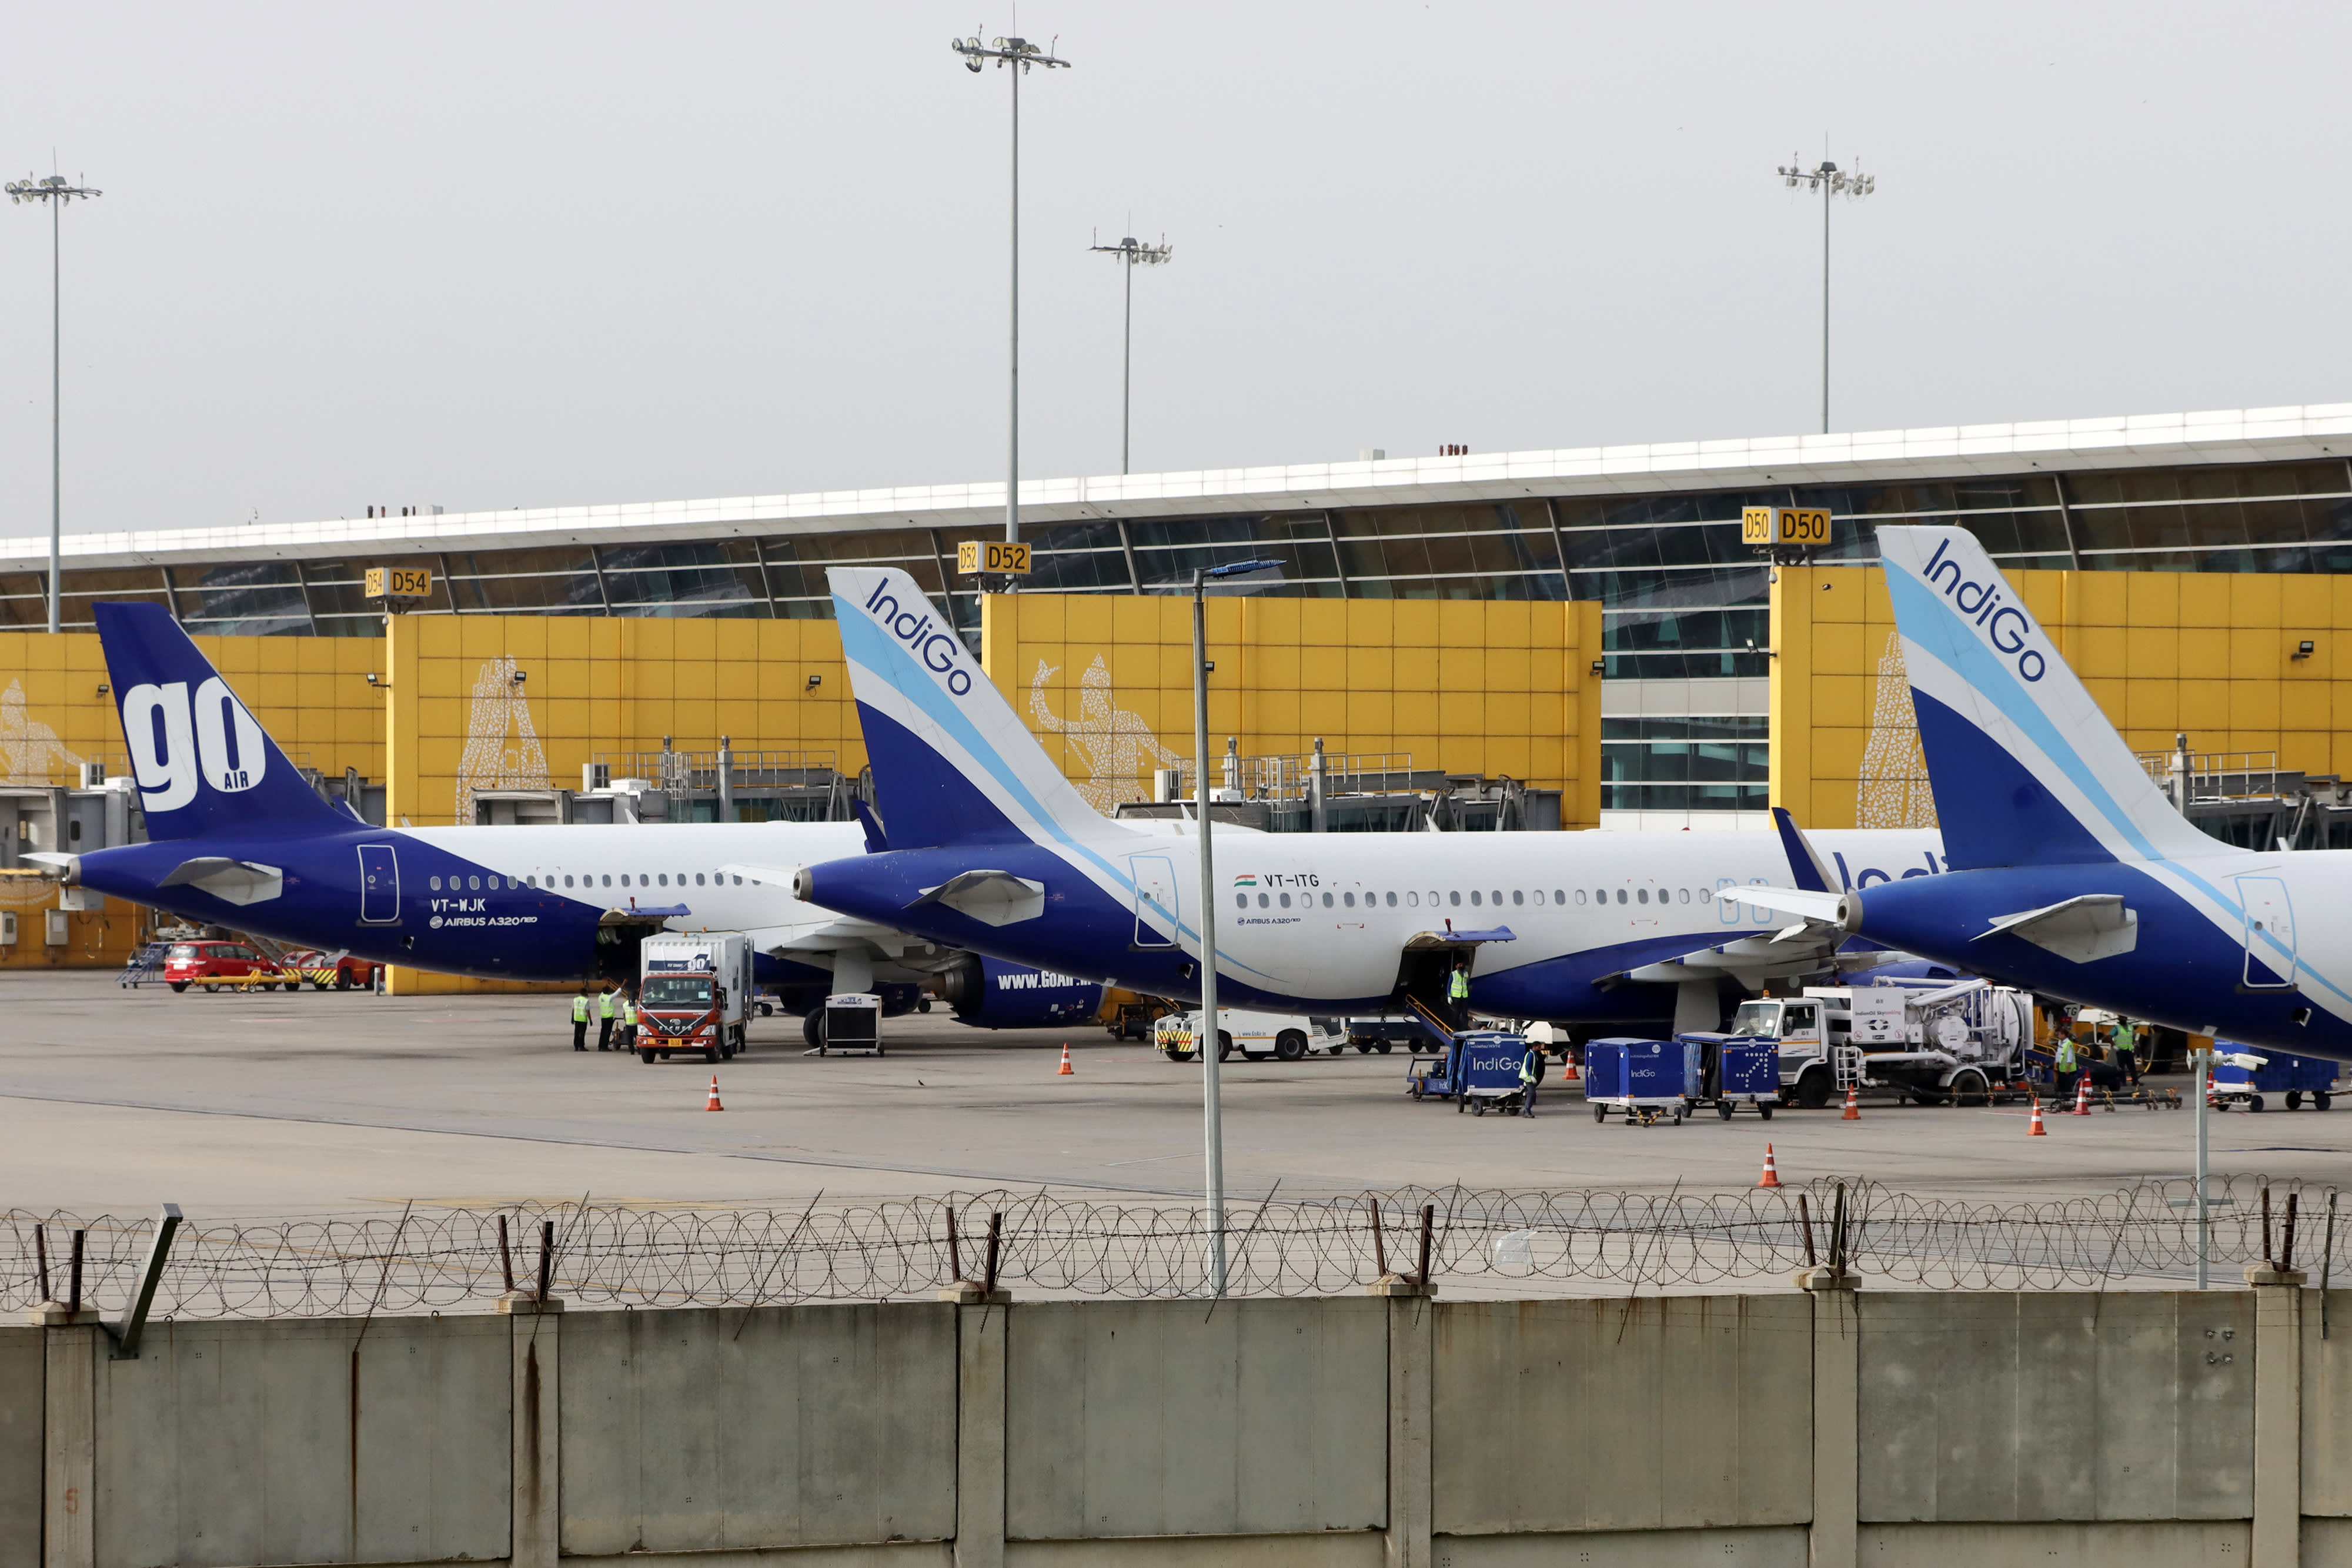 Indian airline IndiGo expects to reach pre-Covid capacity by end-2021